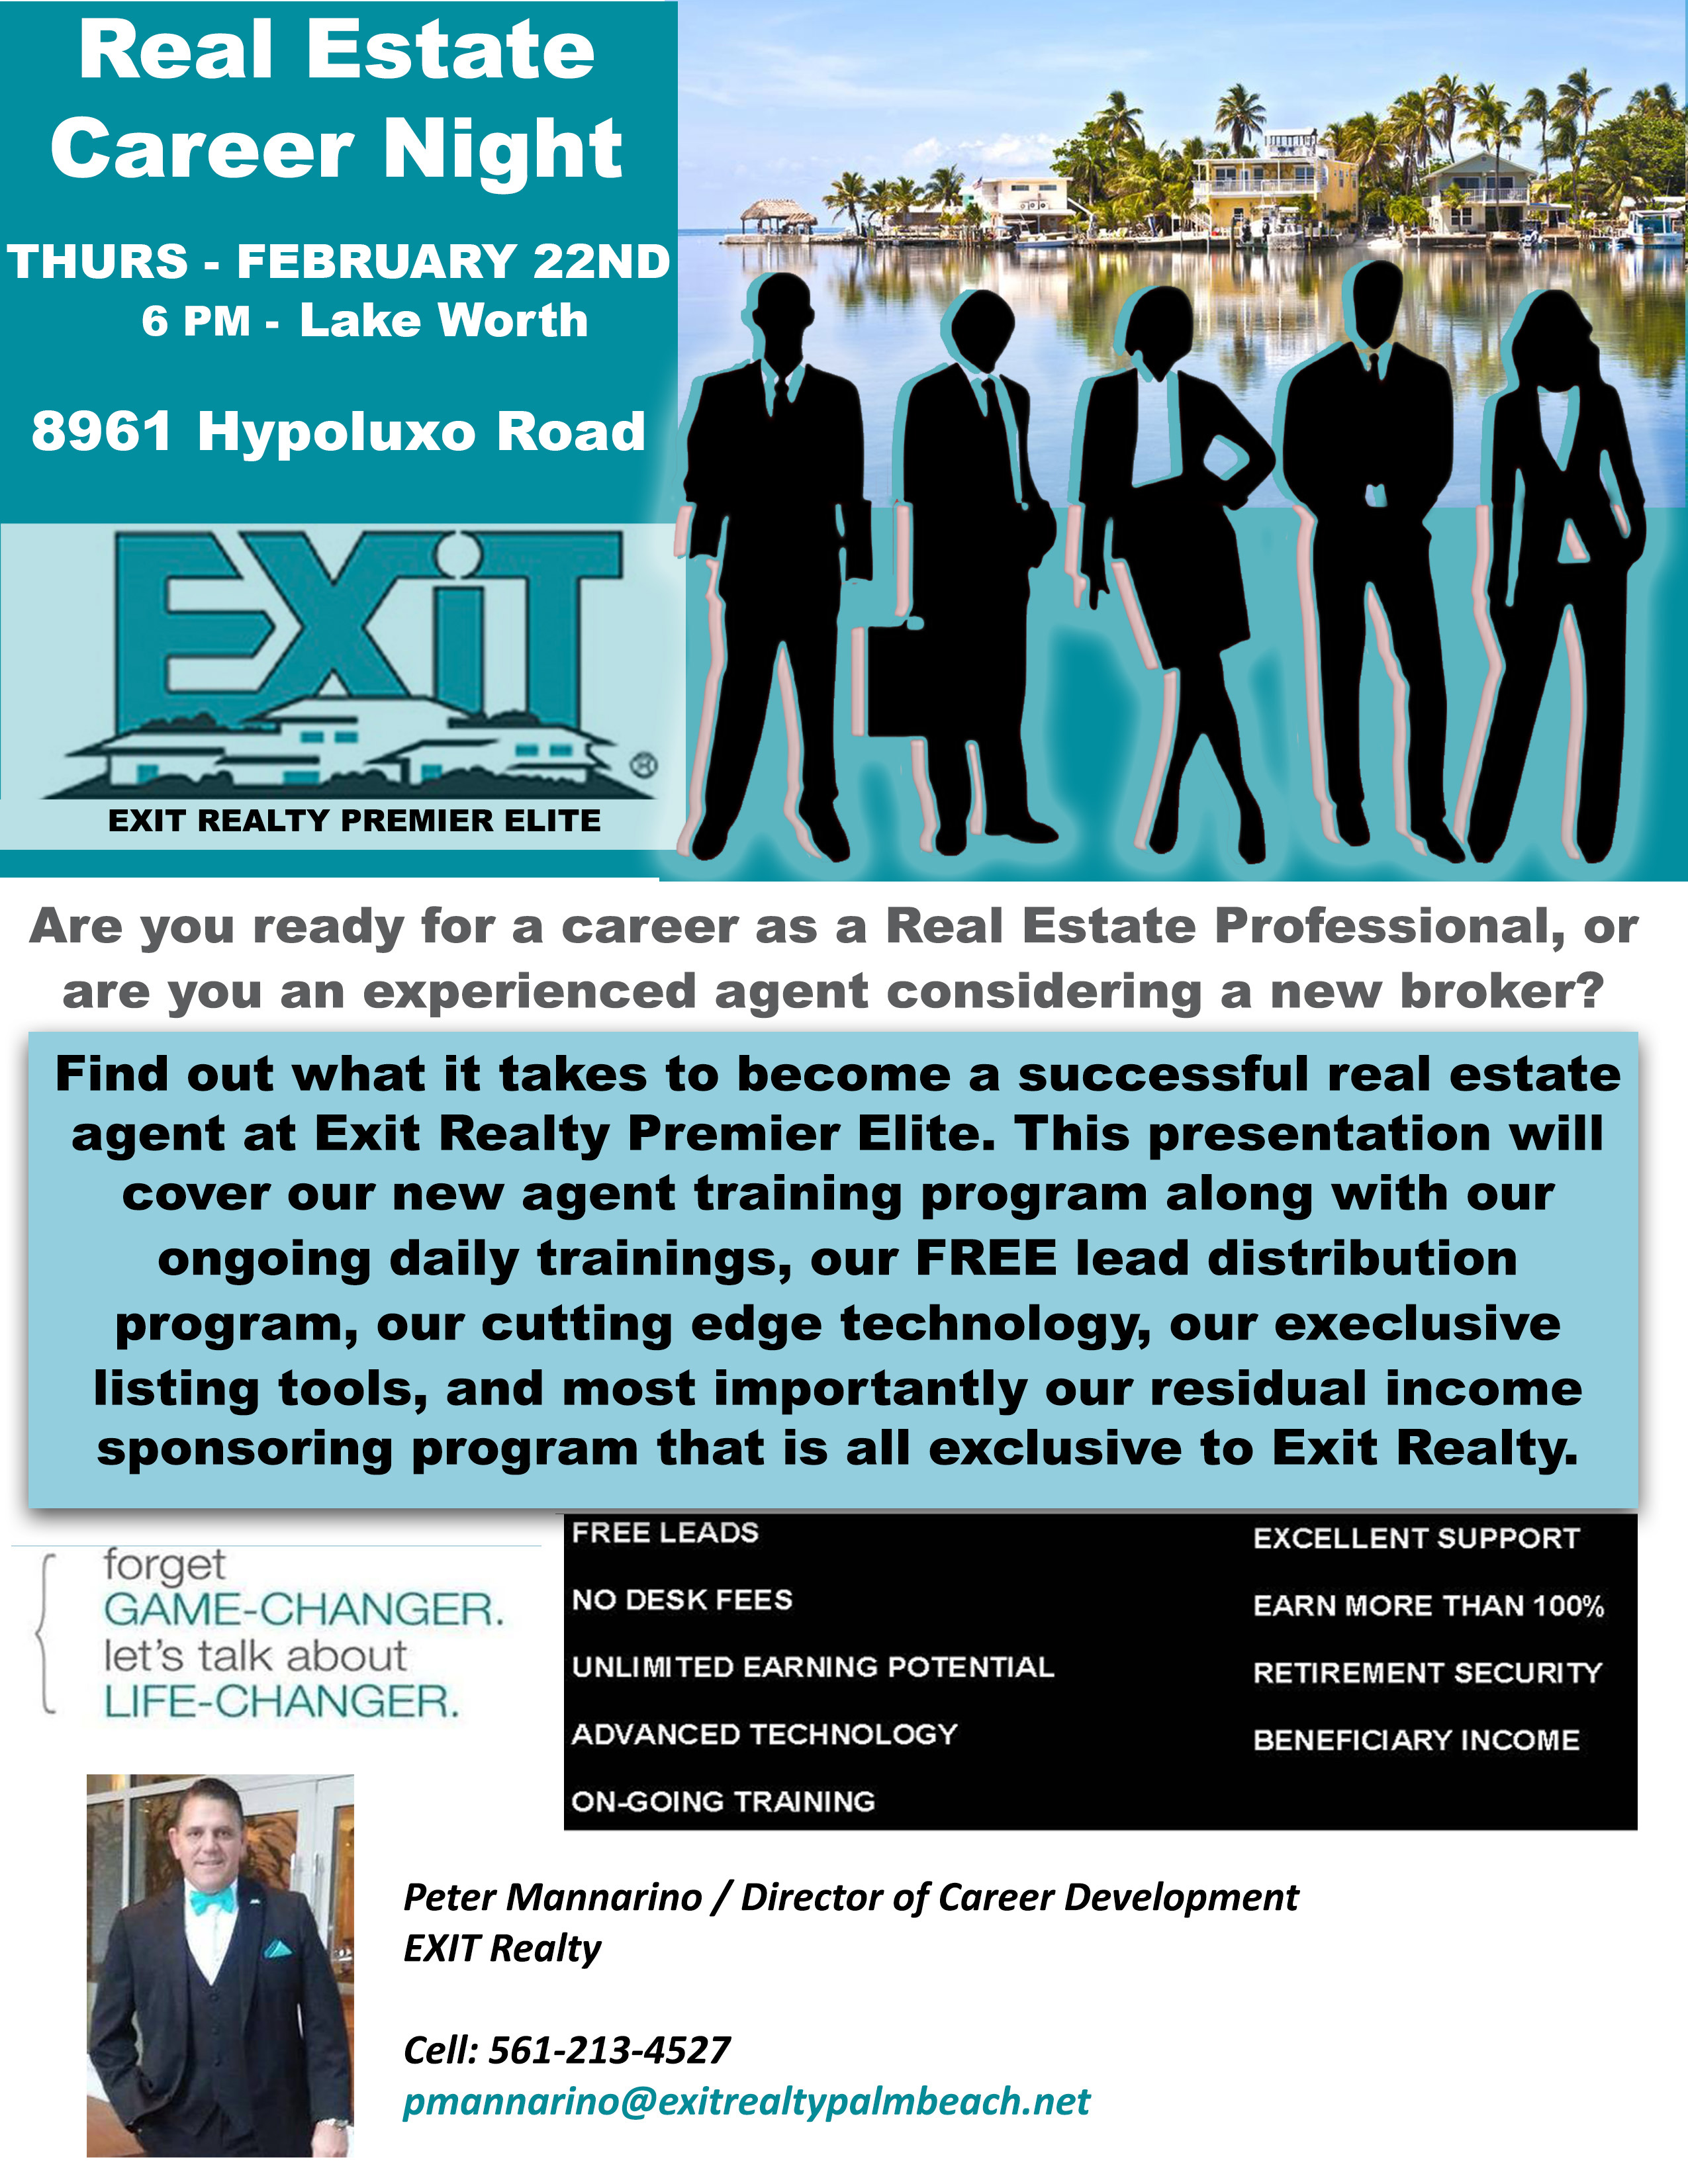 Exit Realty Quot Career Night Quot Free Event Thursday 2 22 18 6 00pm Lake Worth Fl Gold Coast